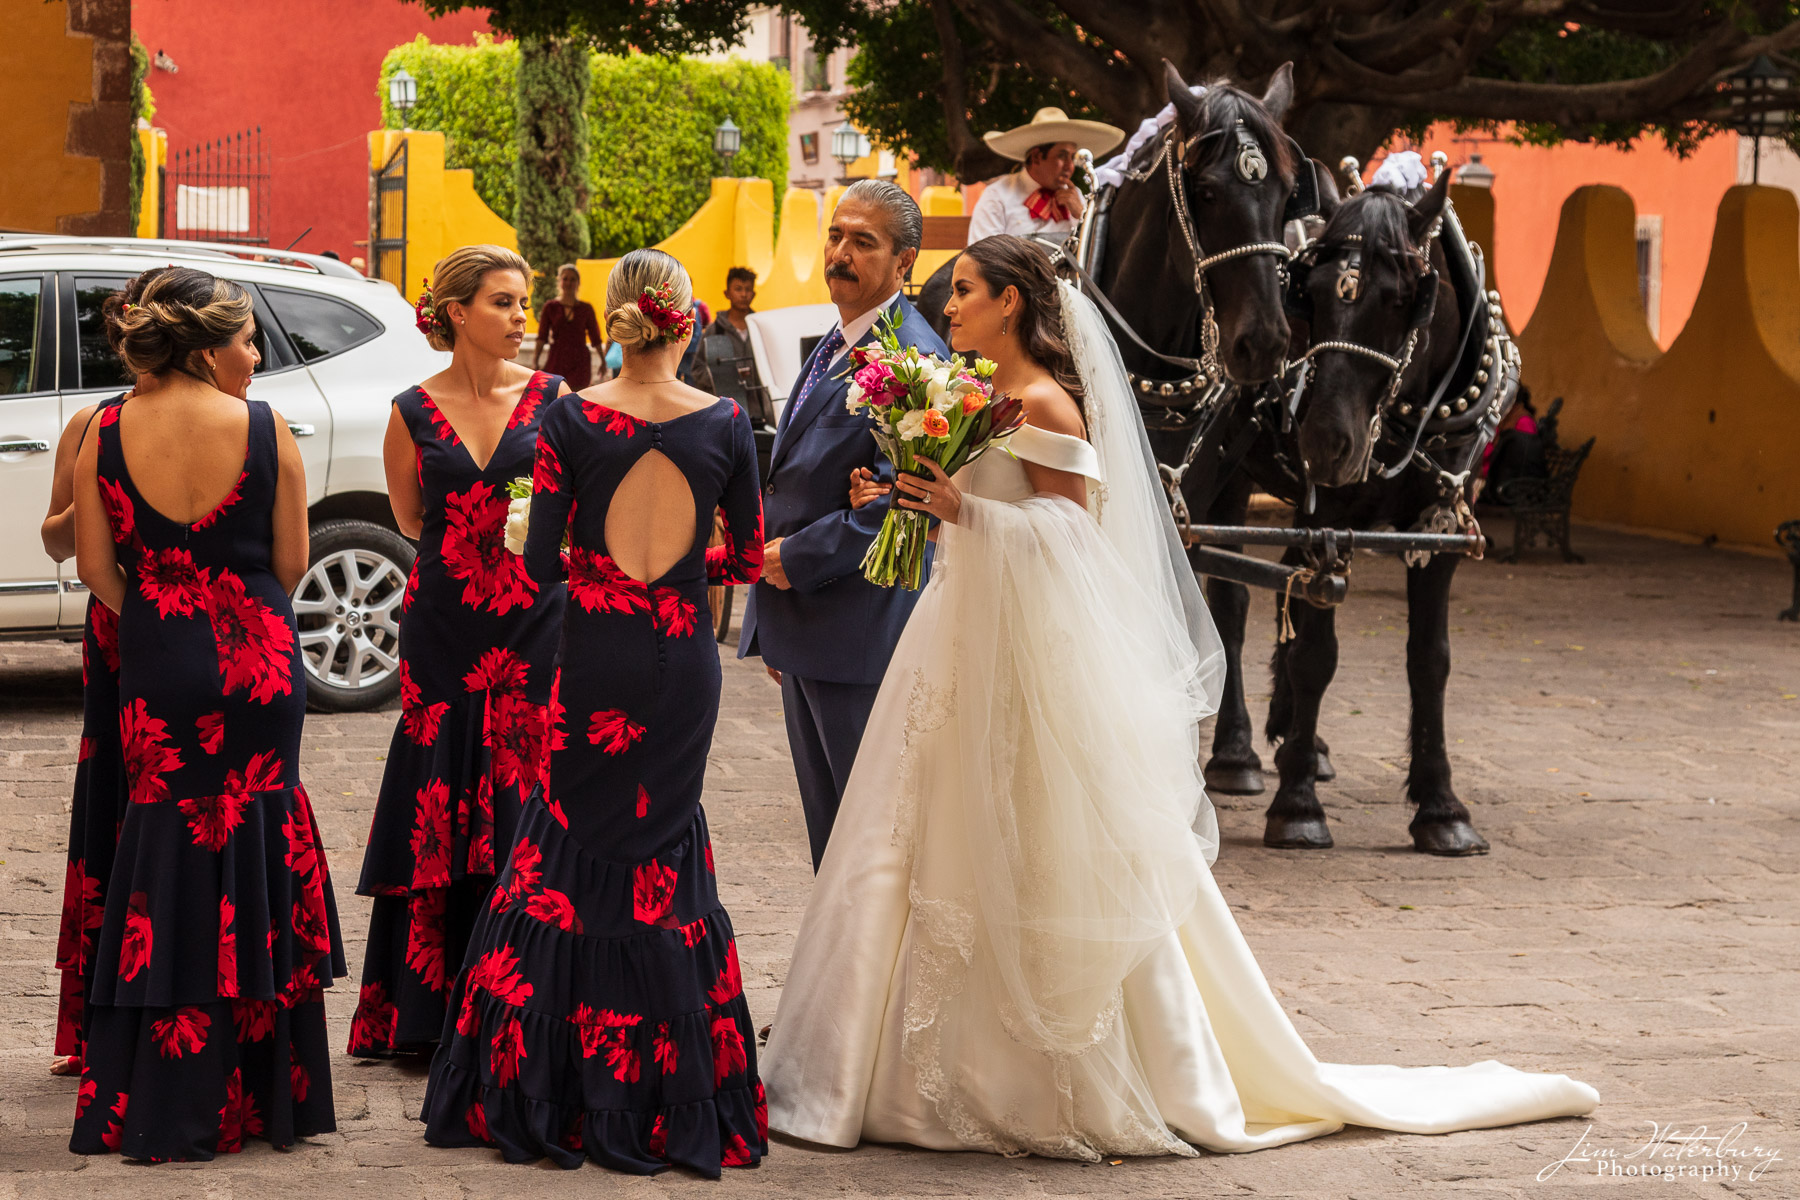 The bride and her father talk with bridesmaids before wedding ceremony in San Miguel de Allende.